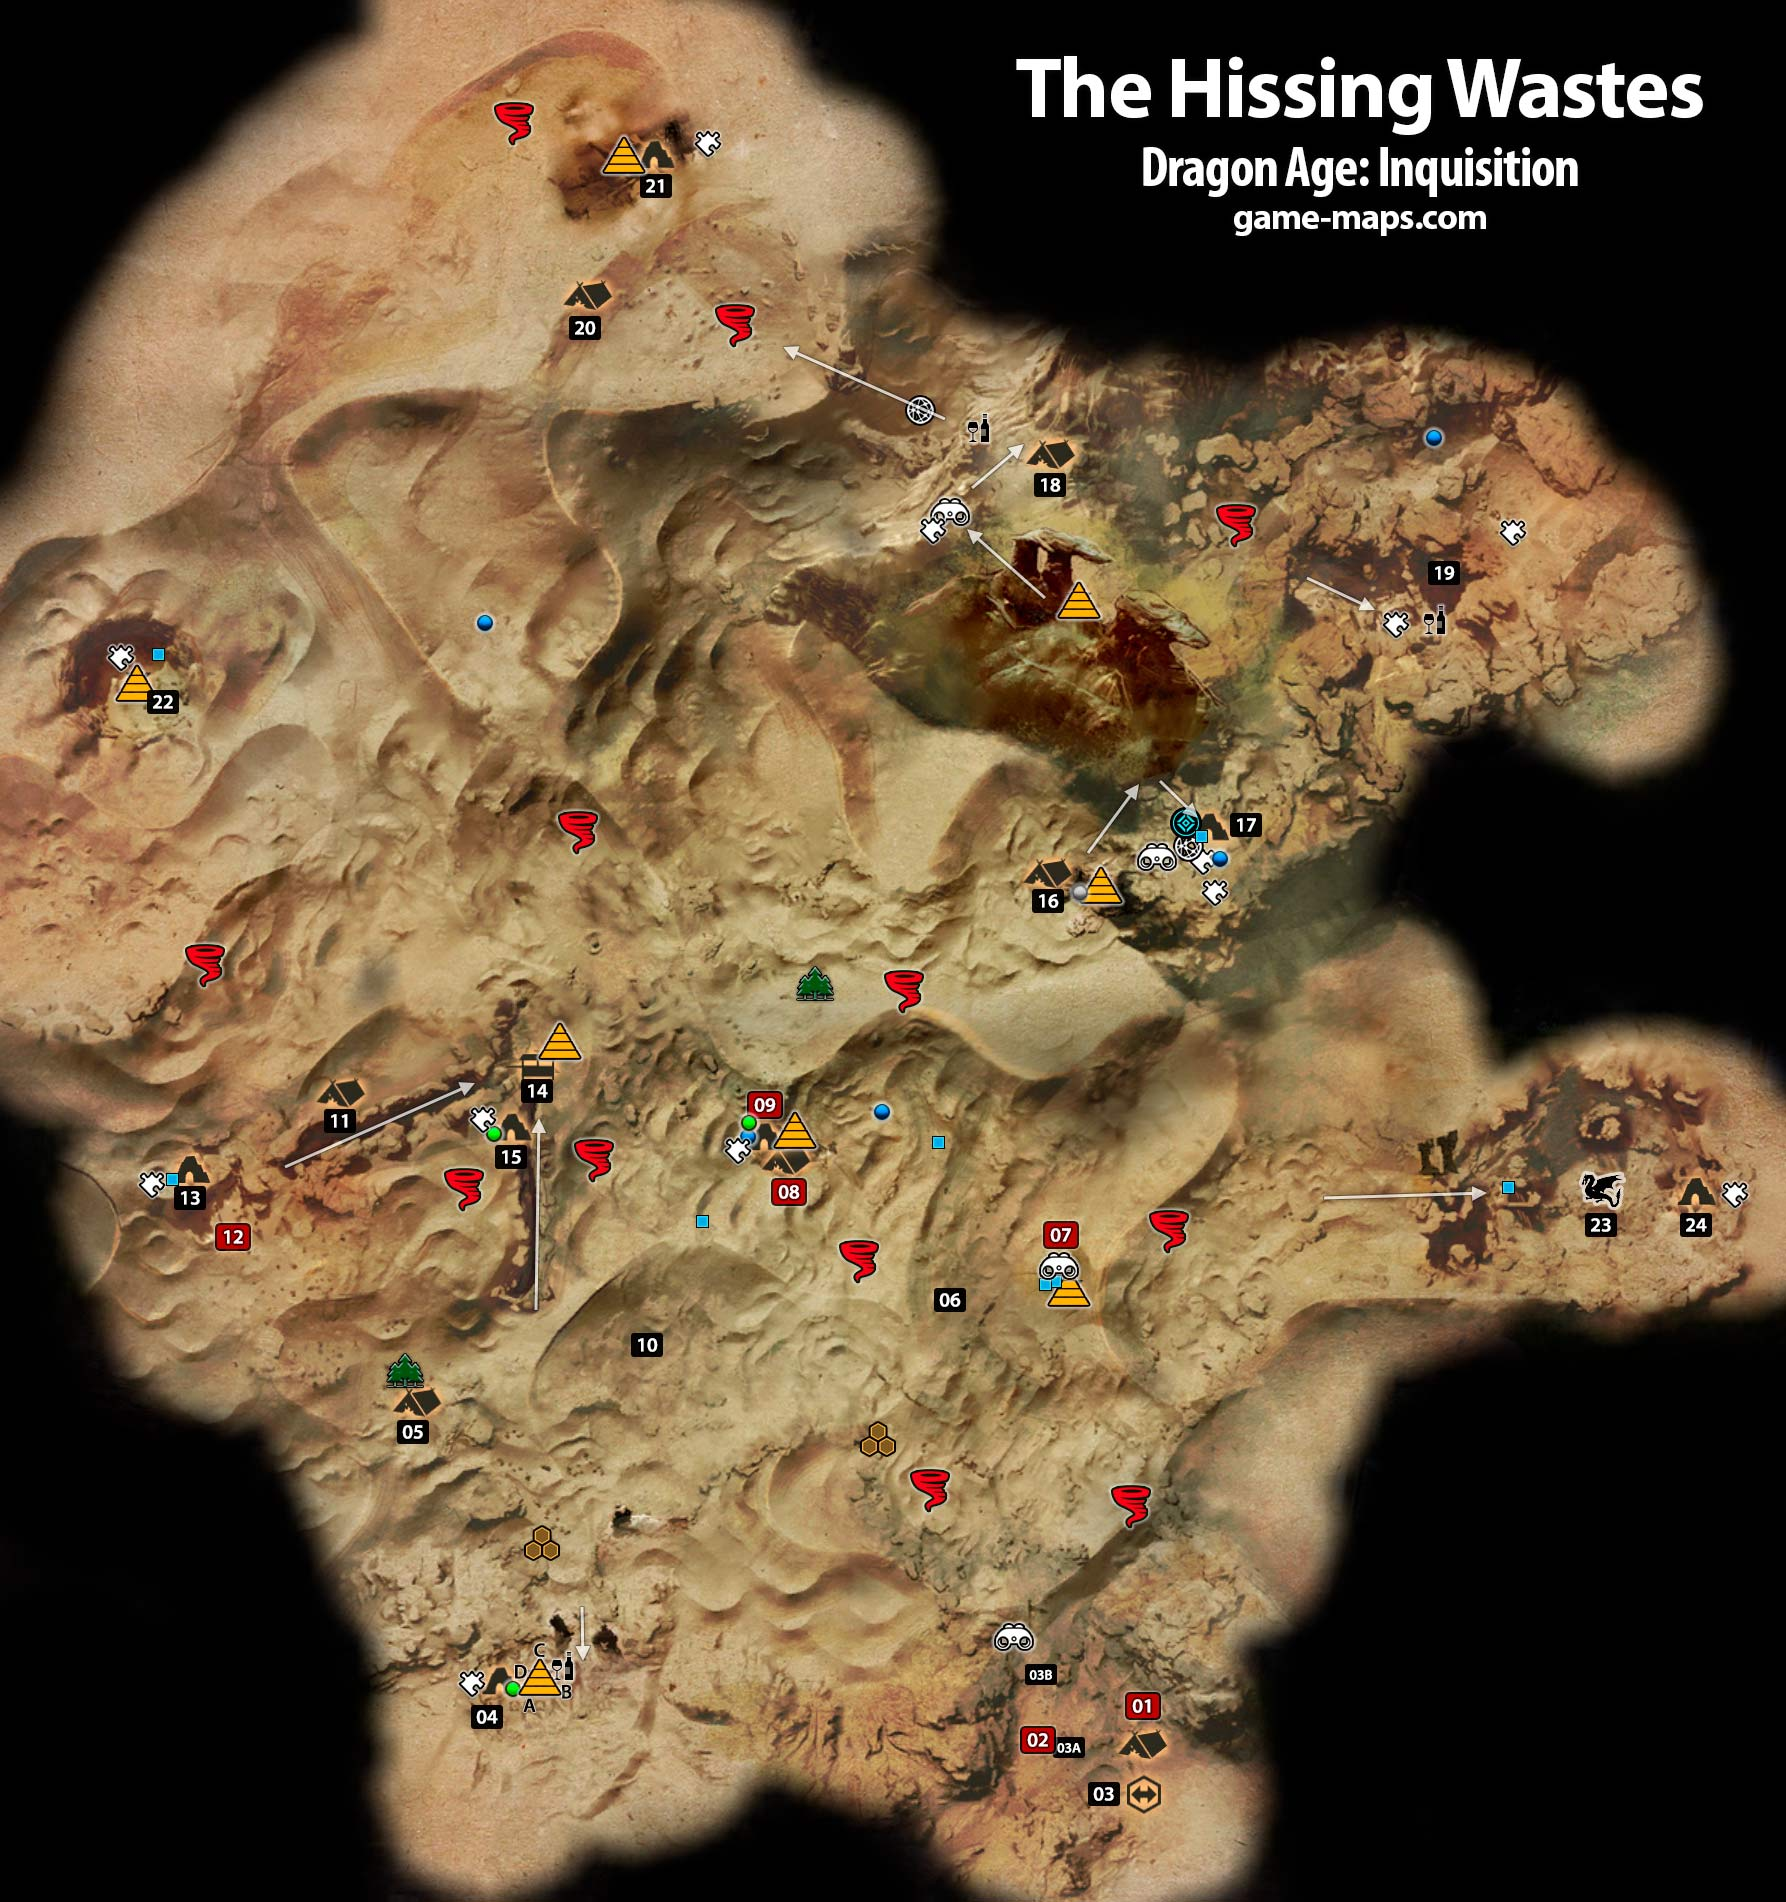 The Hissing Wastes - Dragon Age: Inquisition | game-maps.com